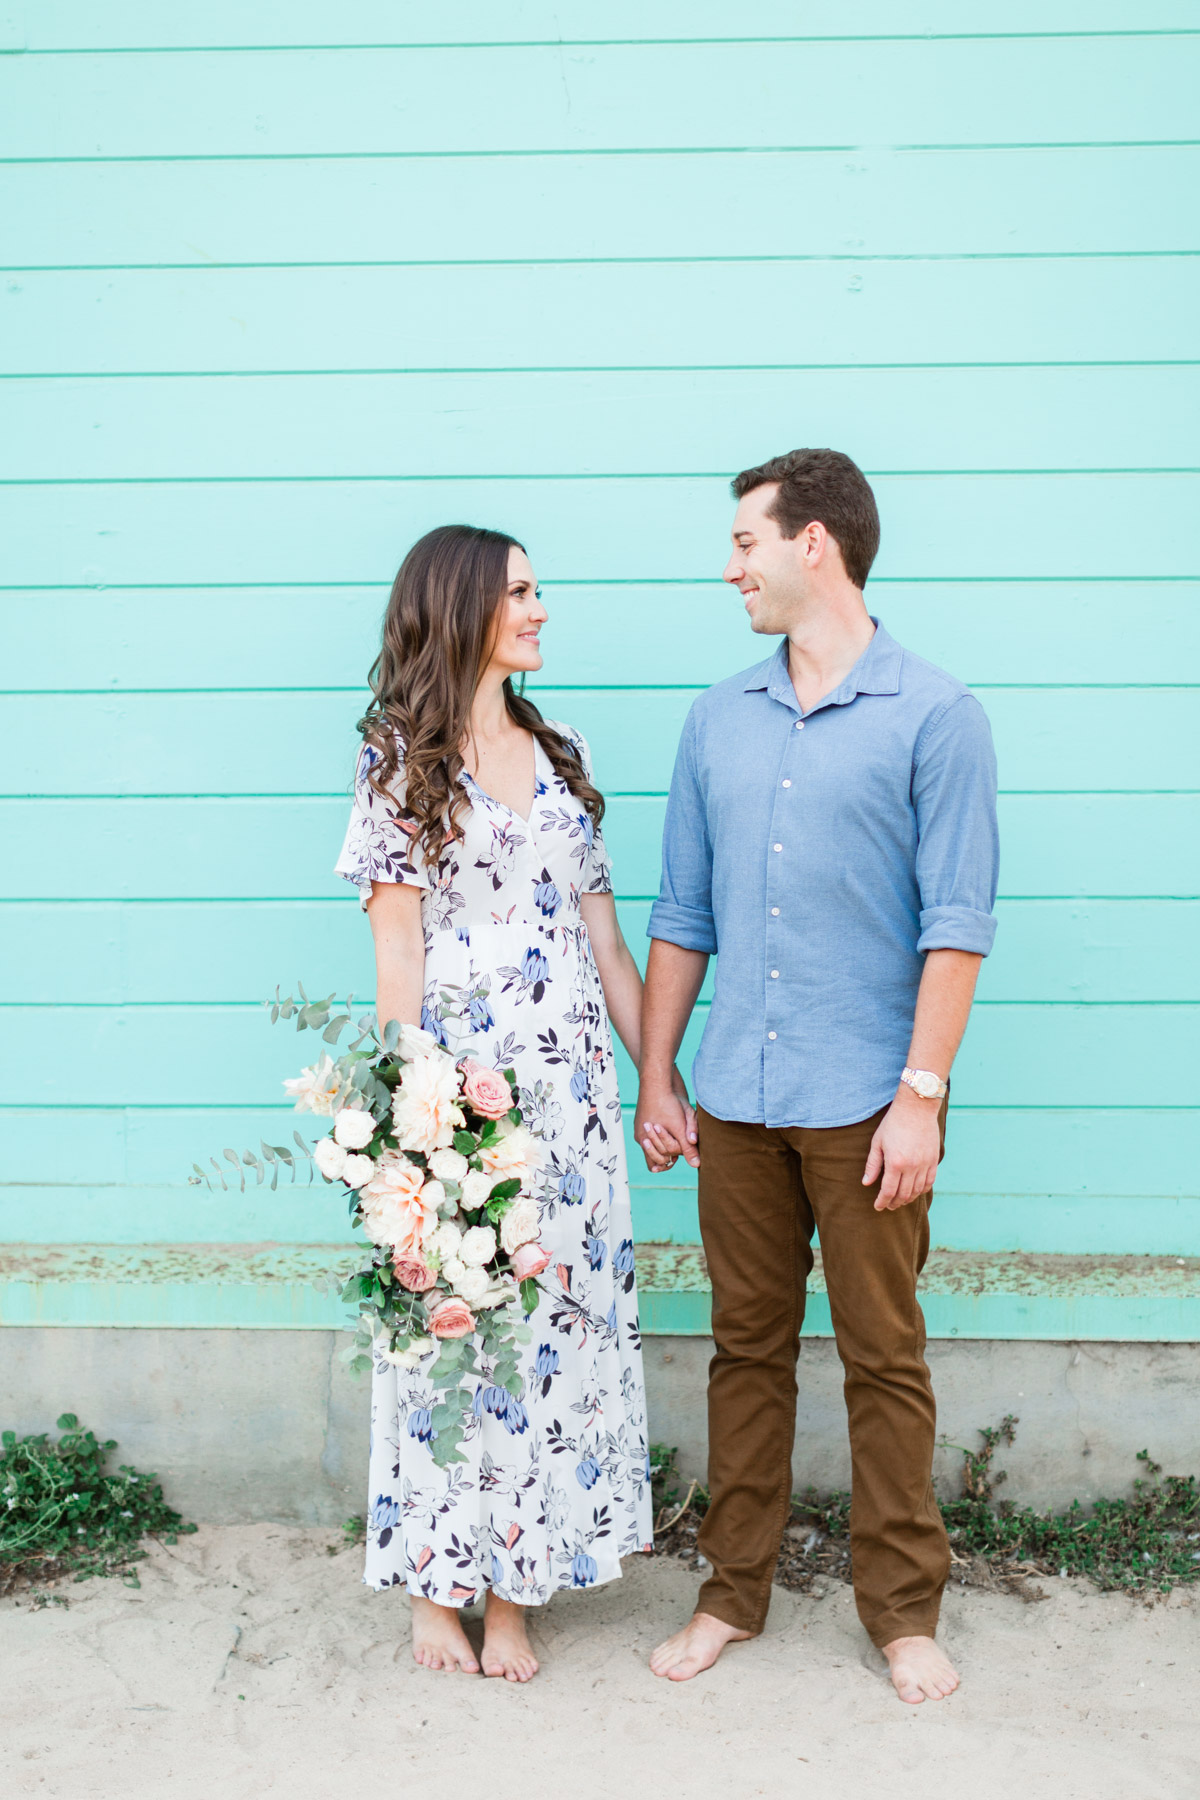 Blush dahlia, white rose and eucalyptus bridal bouquet for down to earth beach engagement photo session | Newport Beach, CA | Compass Floral | Wedding Florist in San Diego and Southern California | Cavin Elizabeth Photography